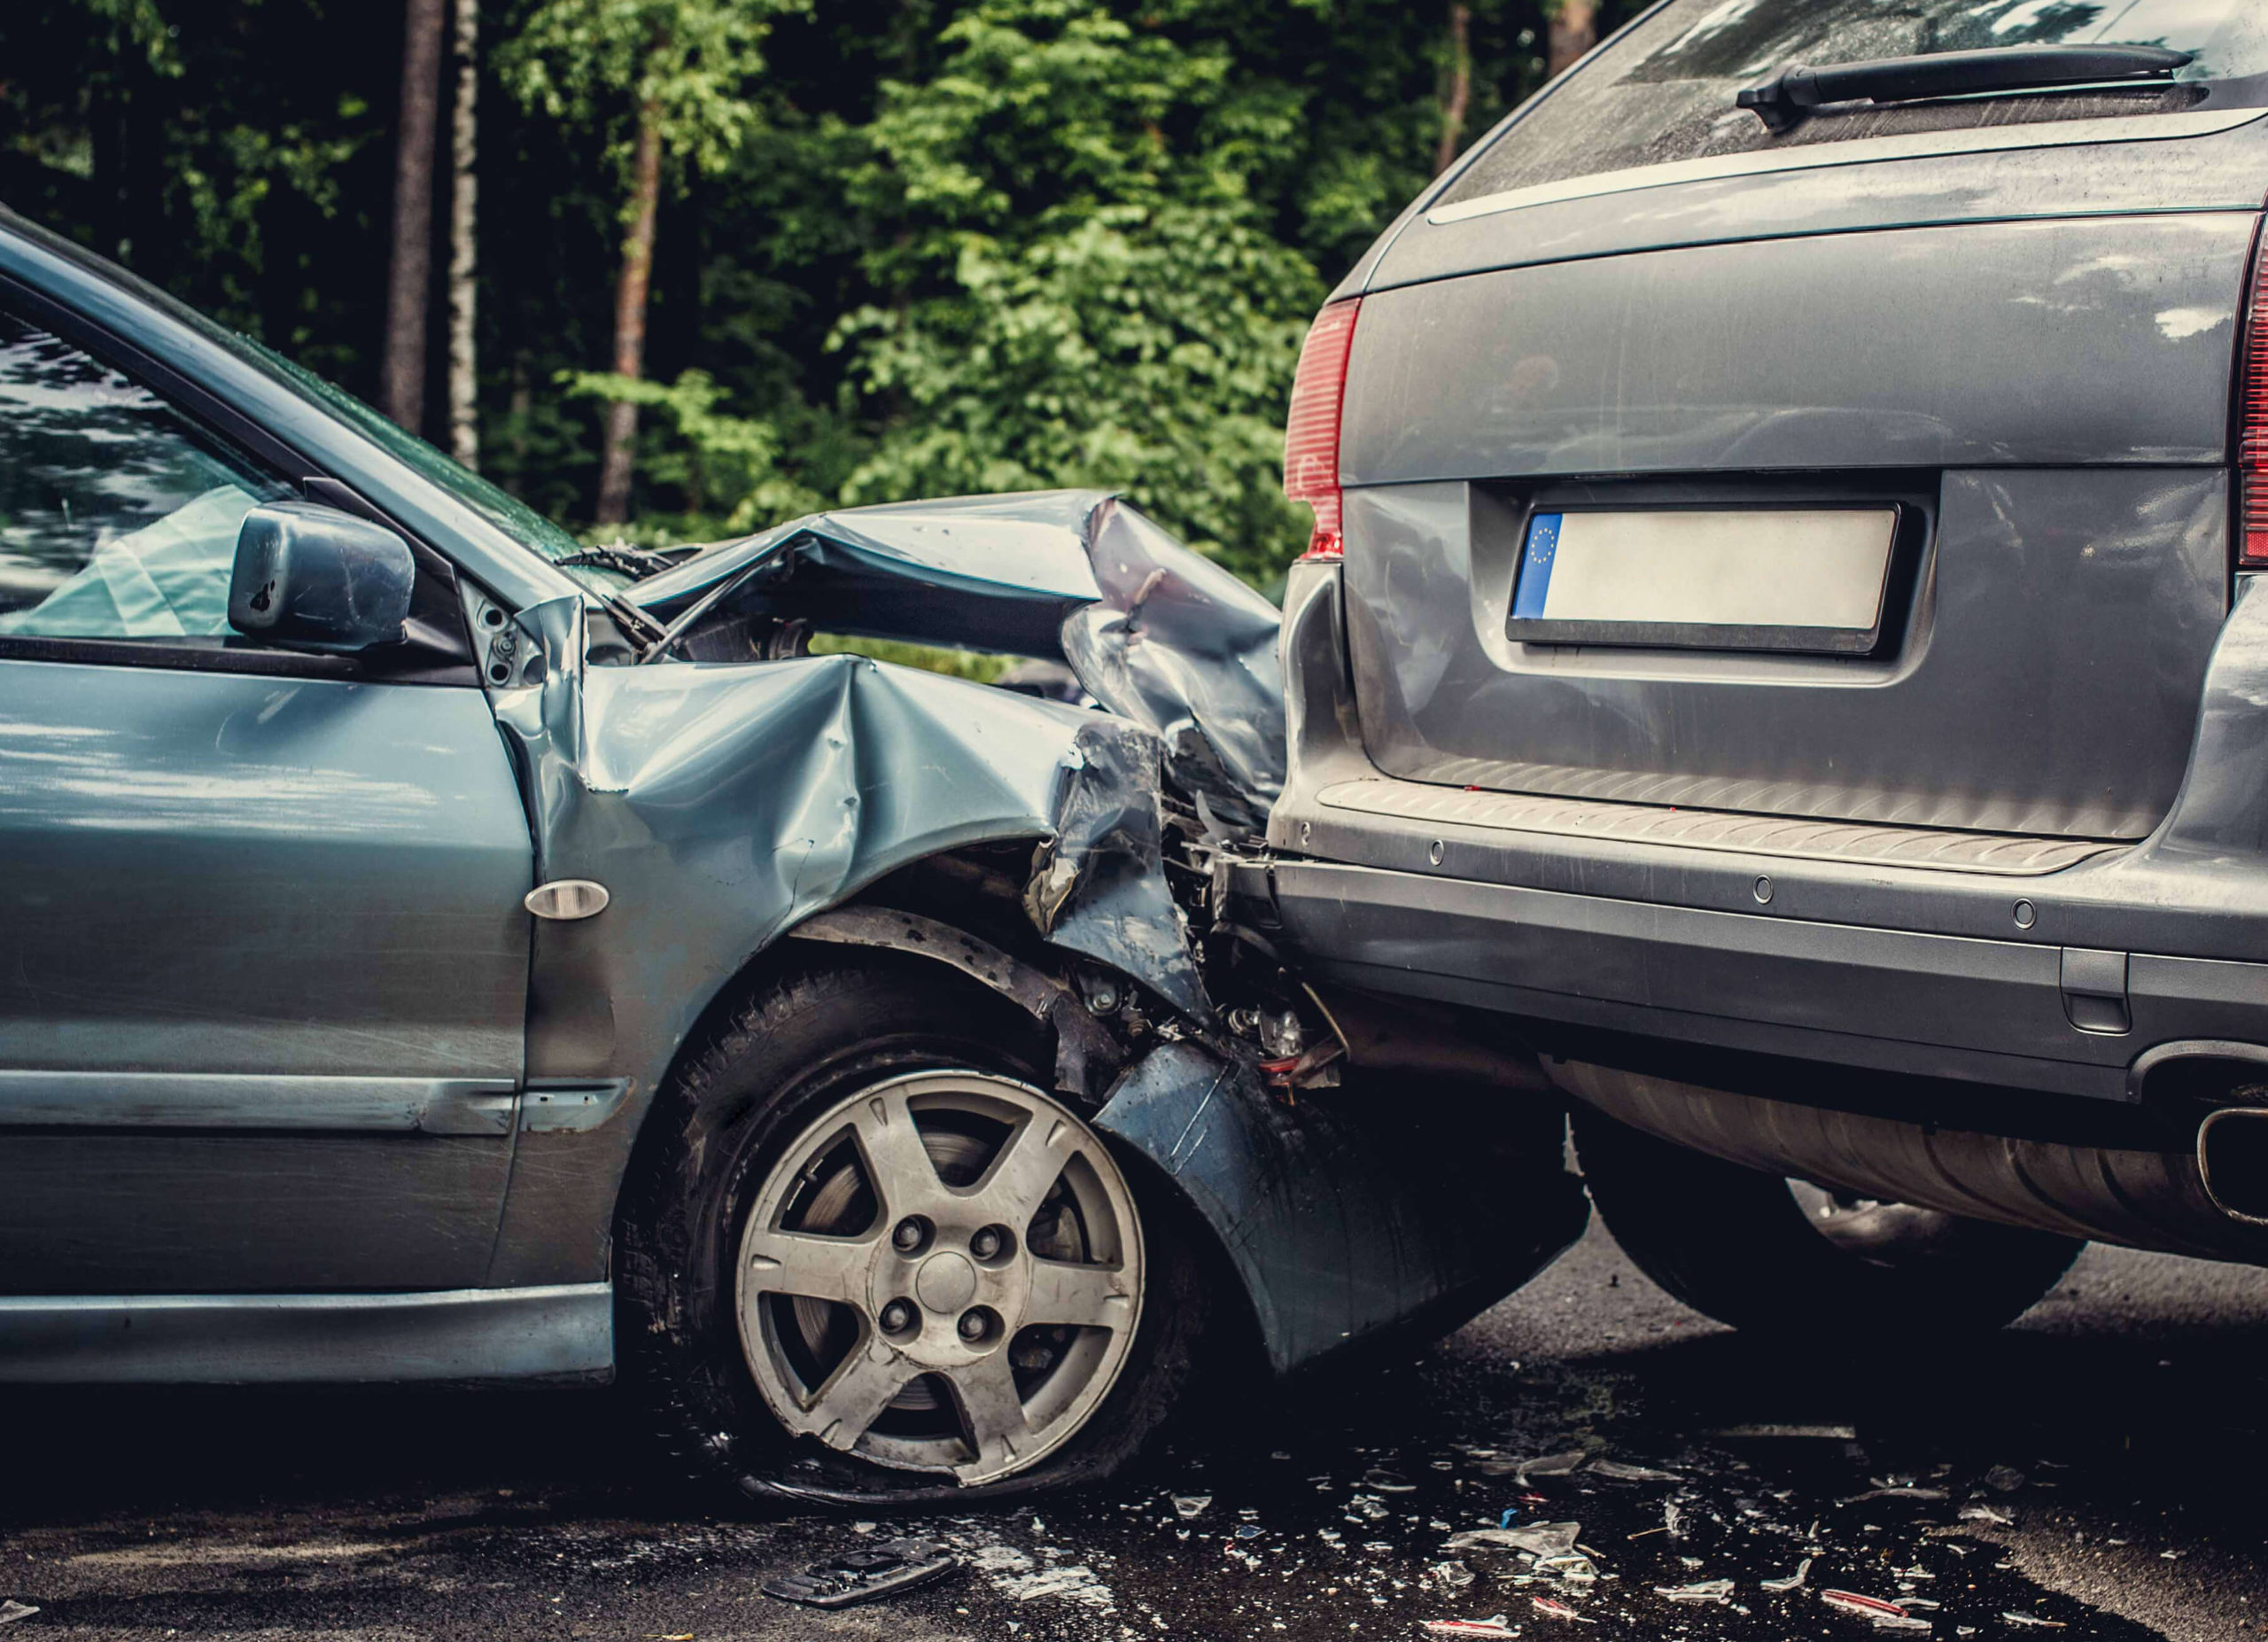 Why Should I Hire A Los Angeles Car Accident Lawyer?